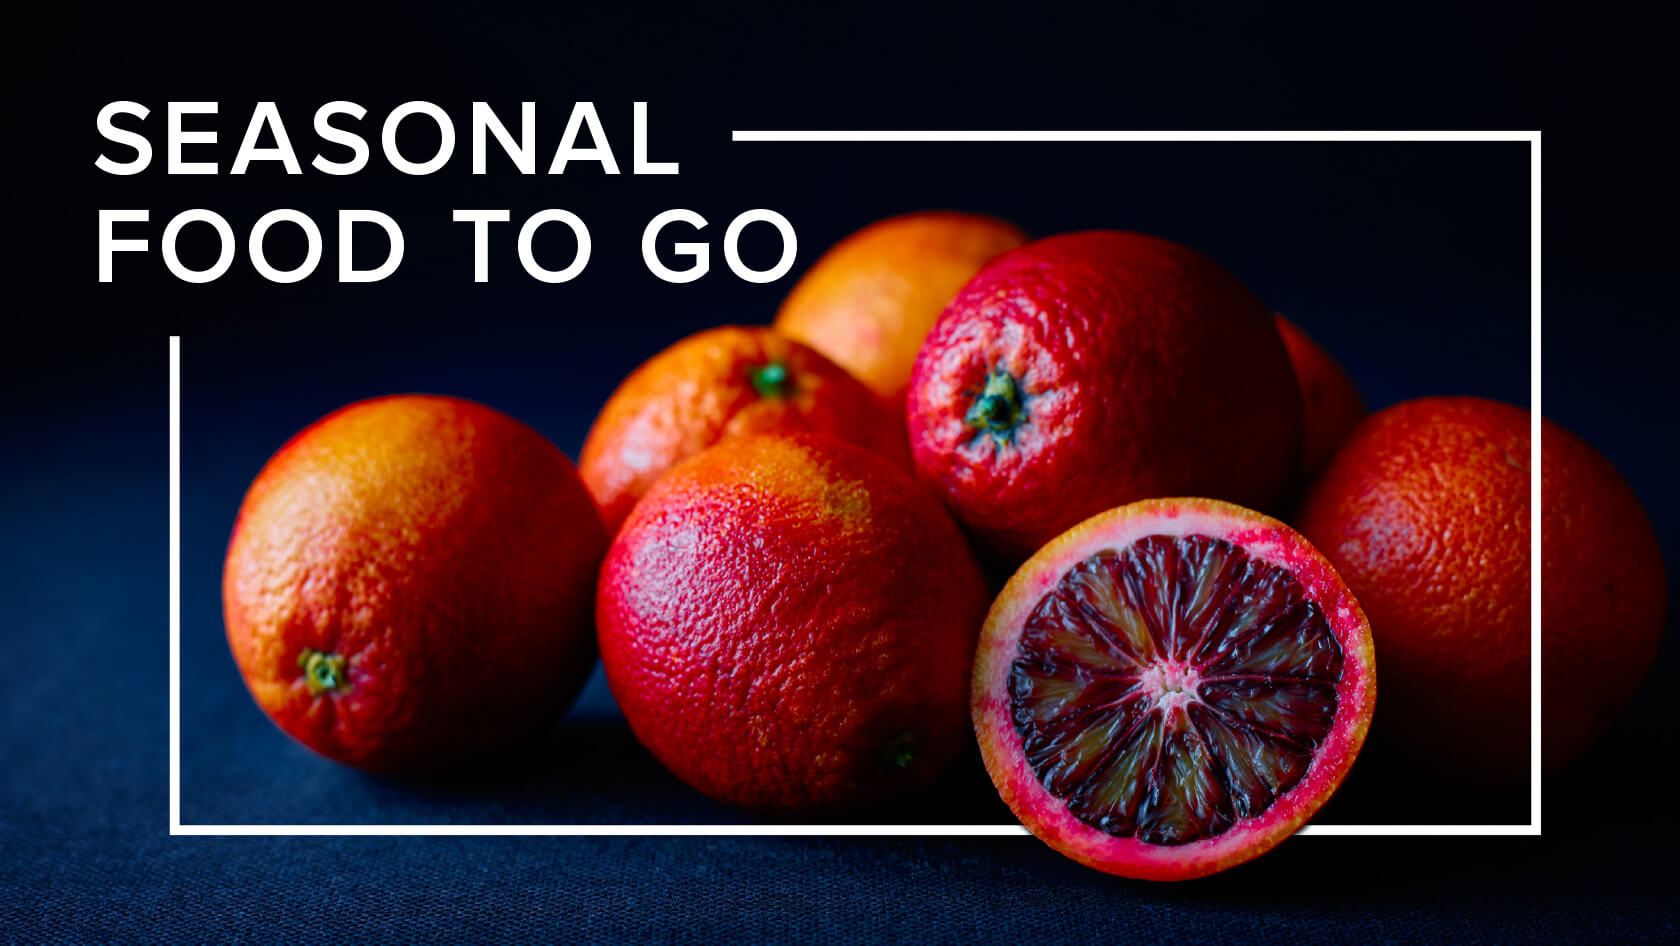 Atmospheric photograph of oranges with the text Seasonal Food To Go